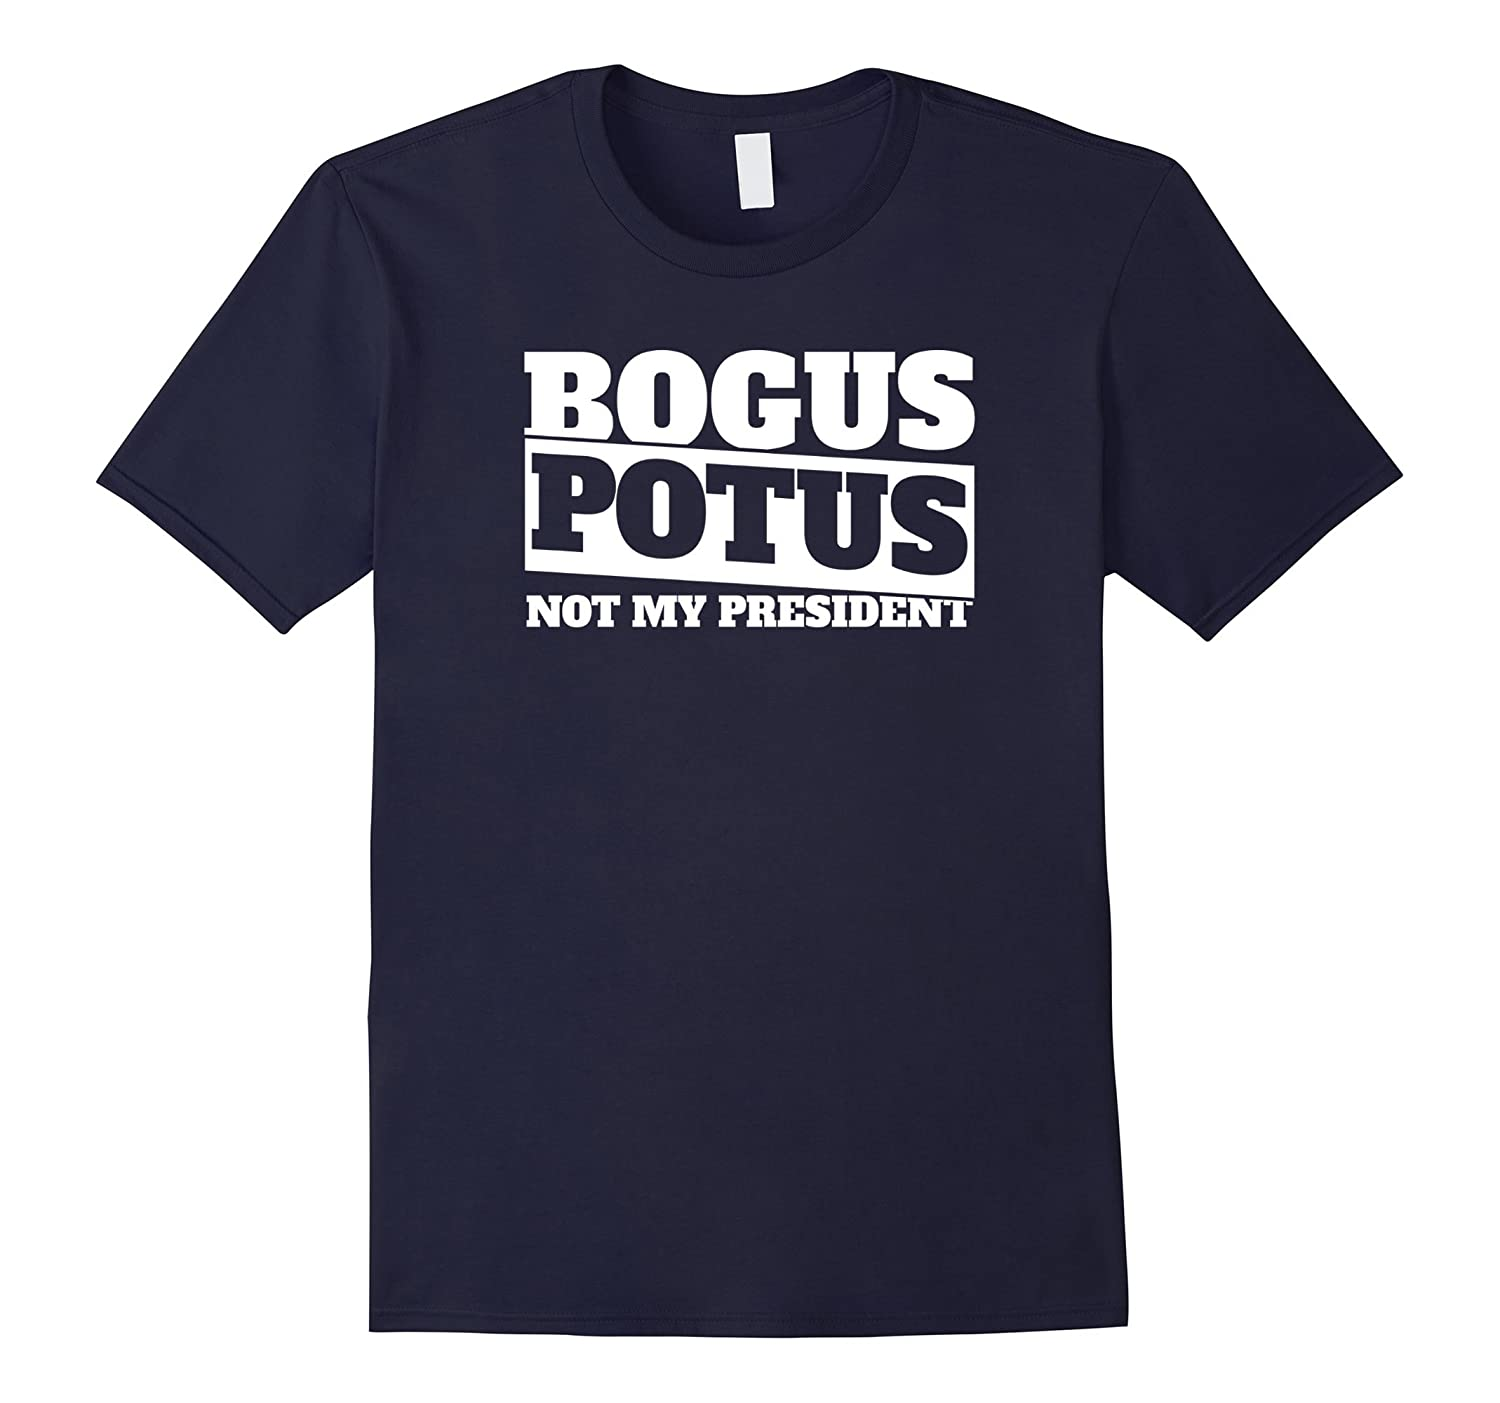 BOGUS POTUS NOT MY PRESIDENT T-SHIRT-CL